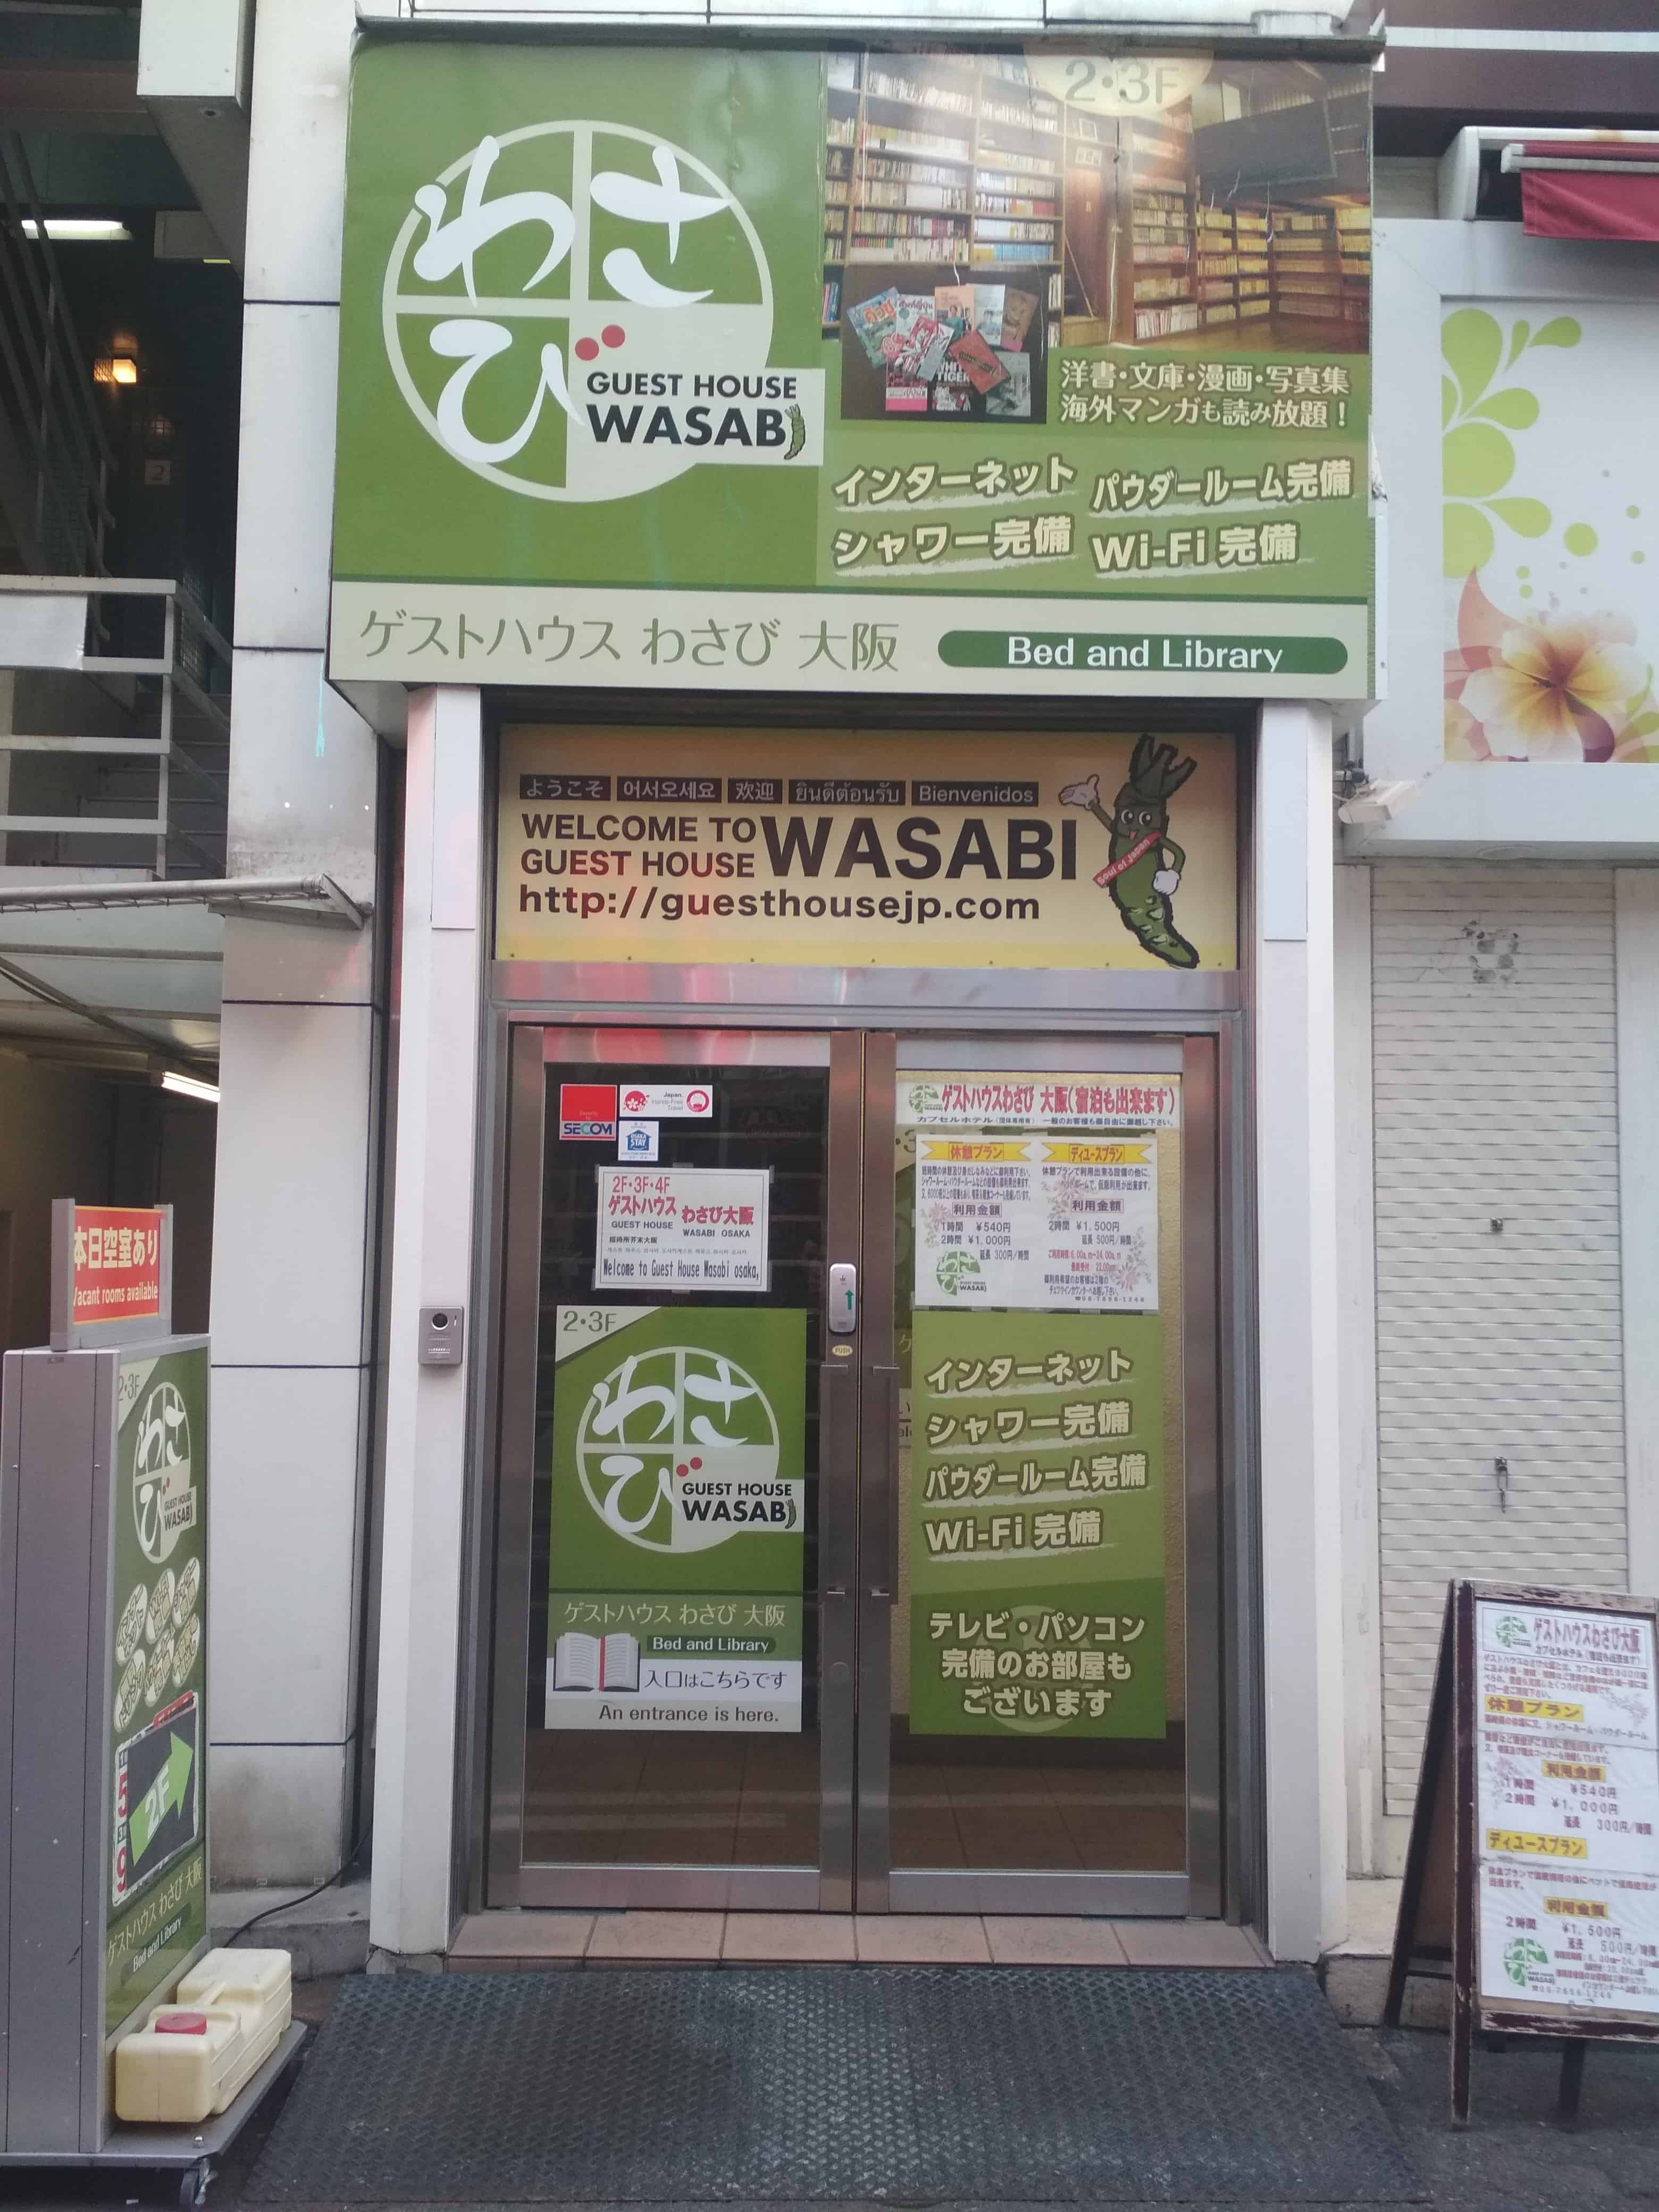 Osaka Entrada Hostel Wasabi 1 - Osaka, how to get there and what to see?